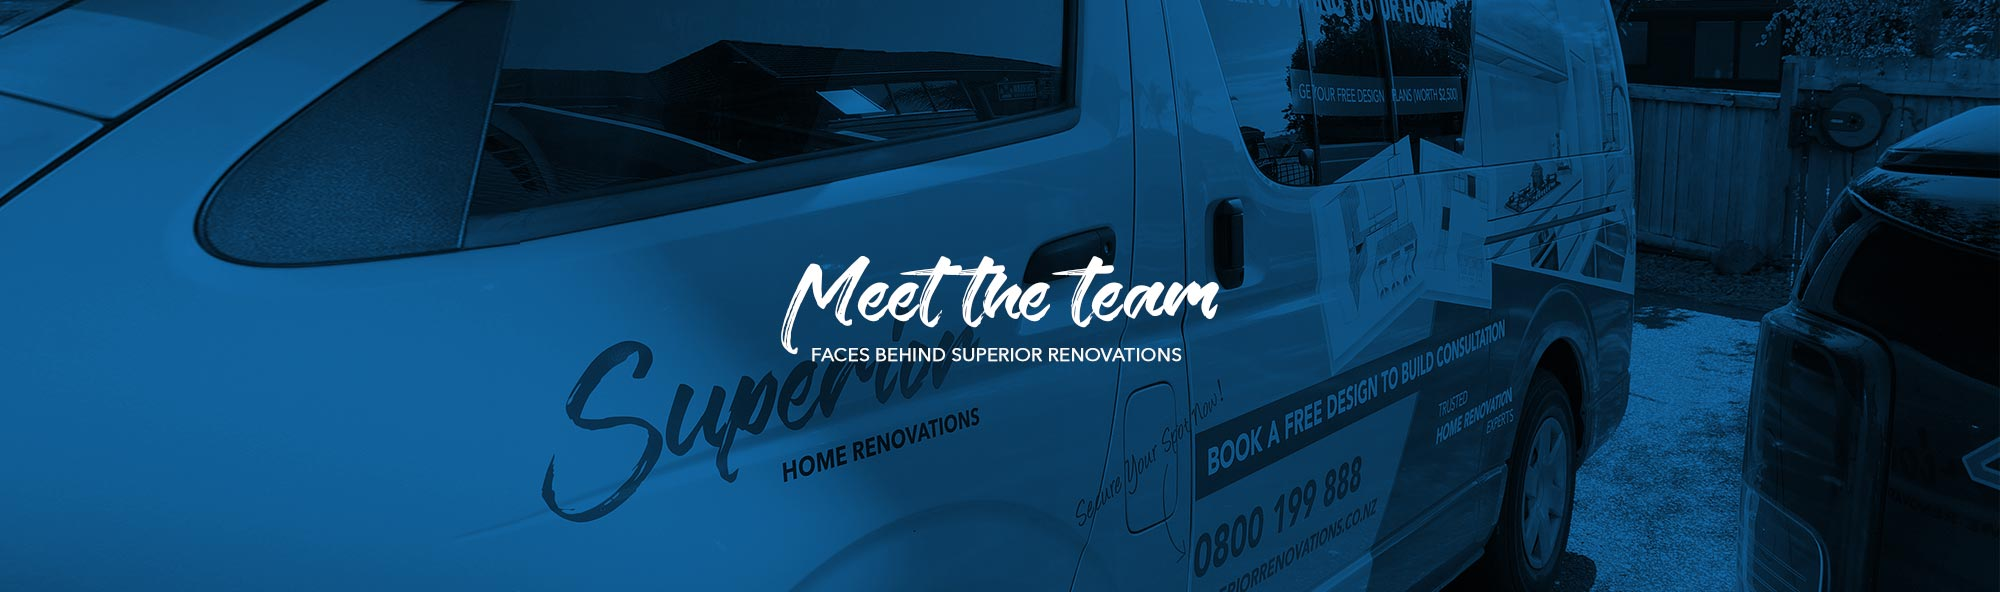 meet-the-team2, Kitchen Renovation, Bathroom Renovation, House Renovation Auckland